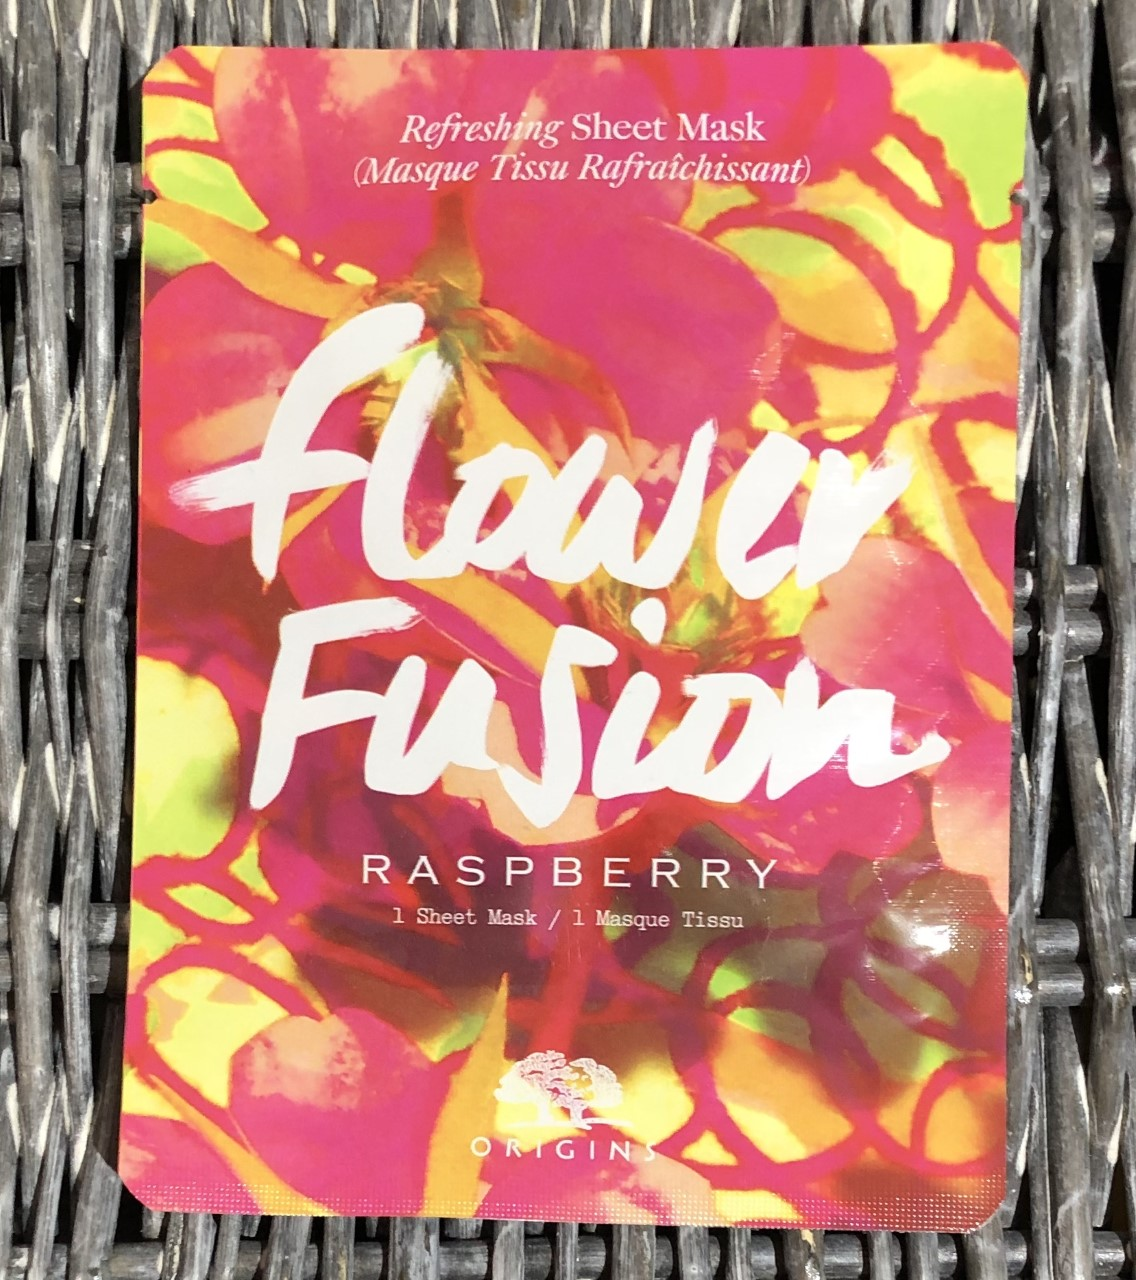 Origins Flower Fusion Raspberry Hydrating Mask Review graphic